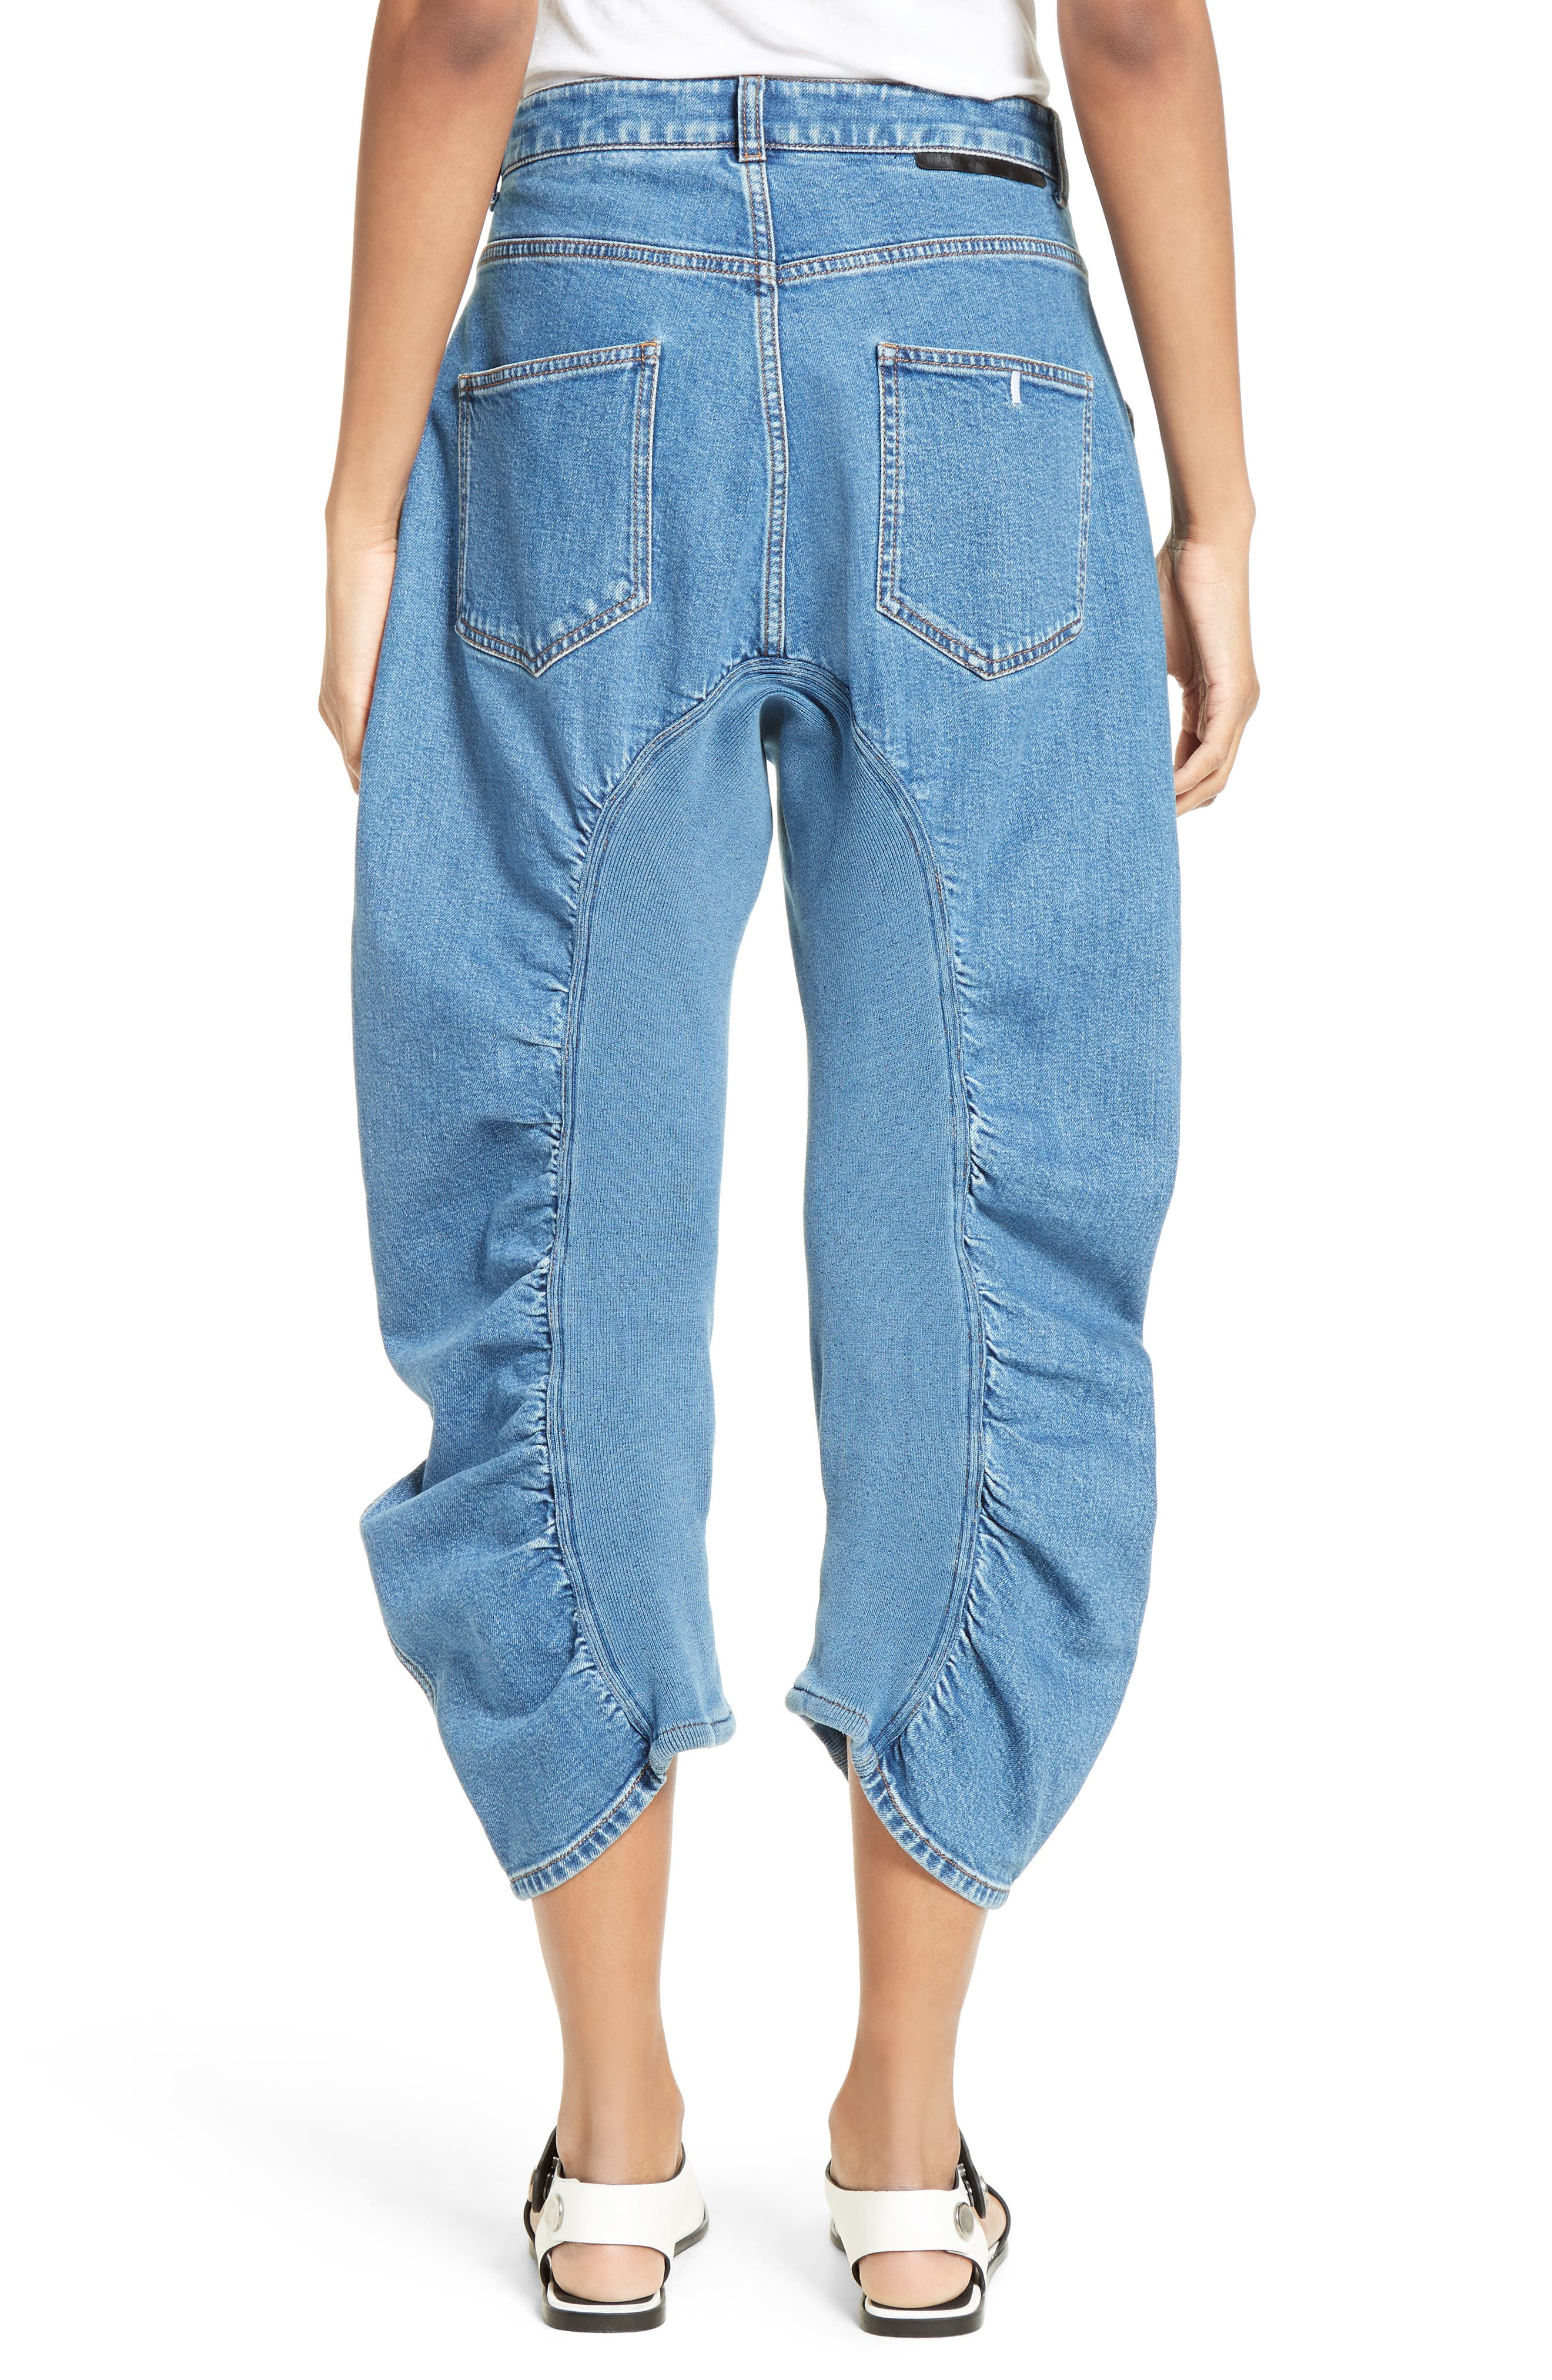 STELLA MCCARTNEY, Xenia Ruched Crop Jeans, Alternate thumbnail 2, color, 400